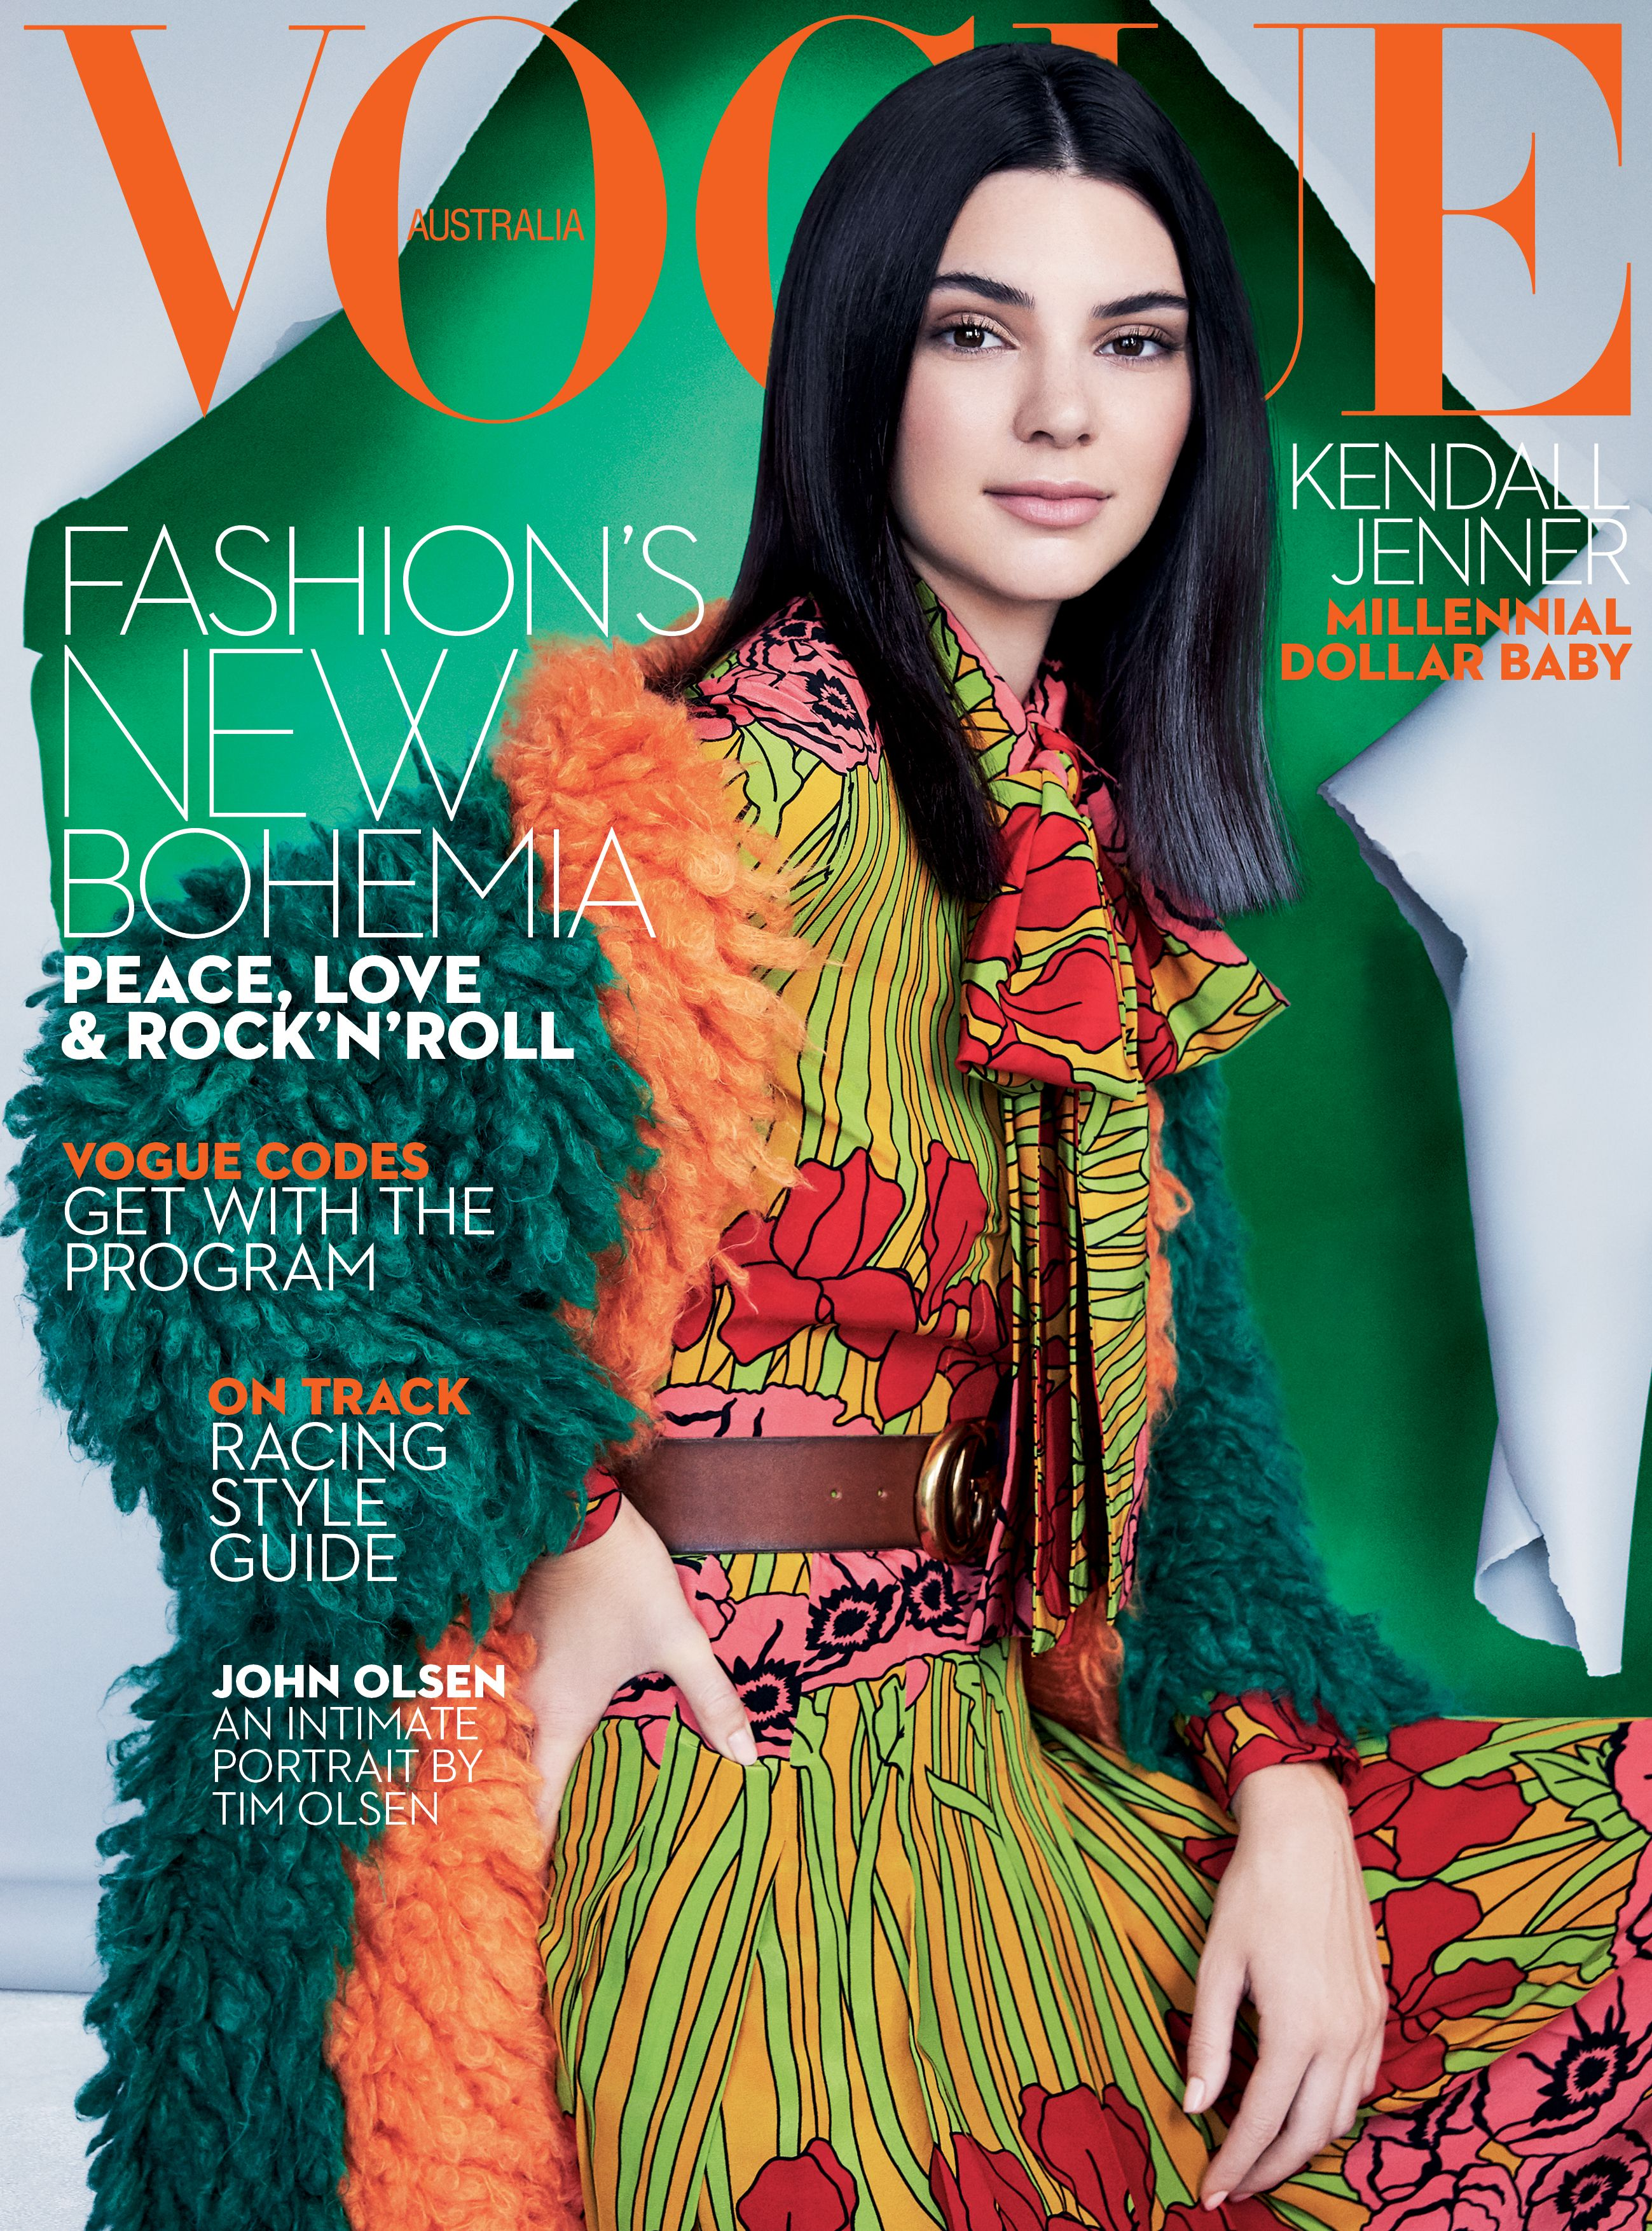 Kendall Jenner for Vogue Australia October 2016. More